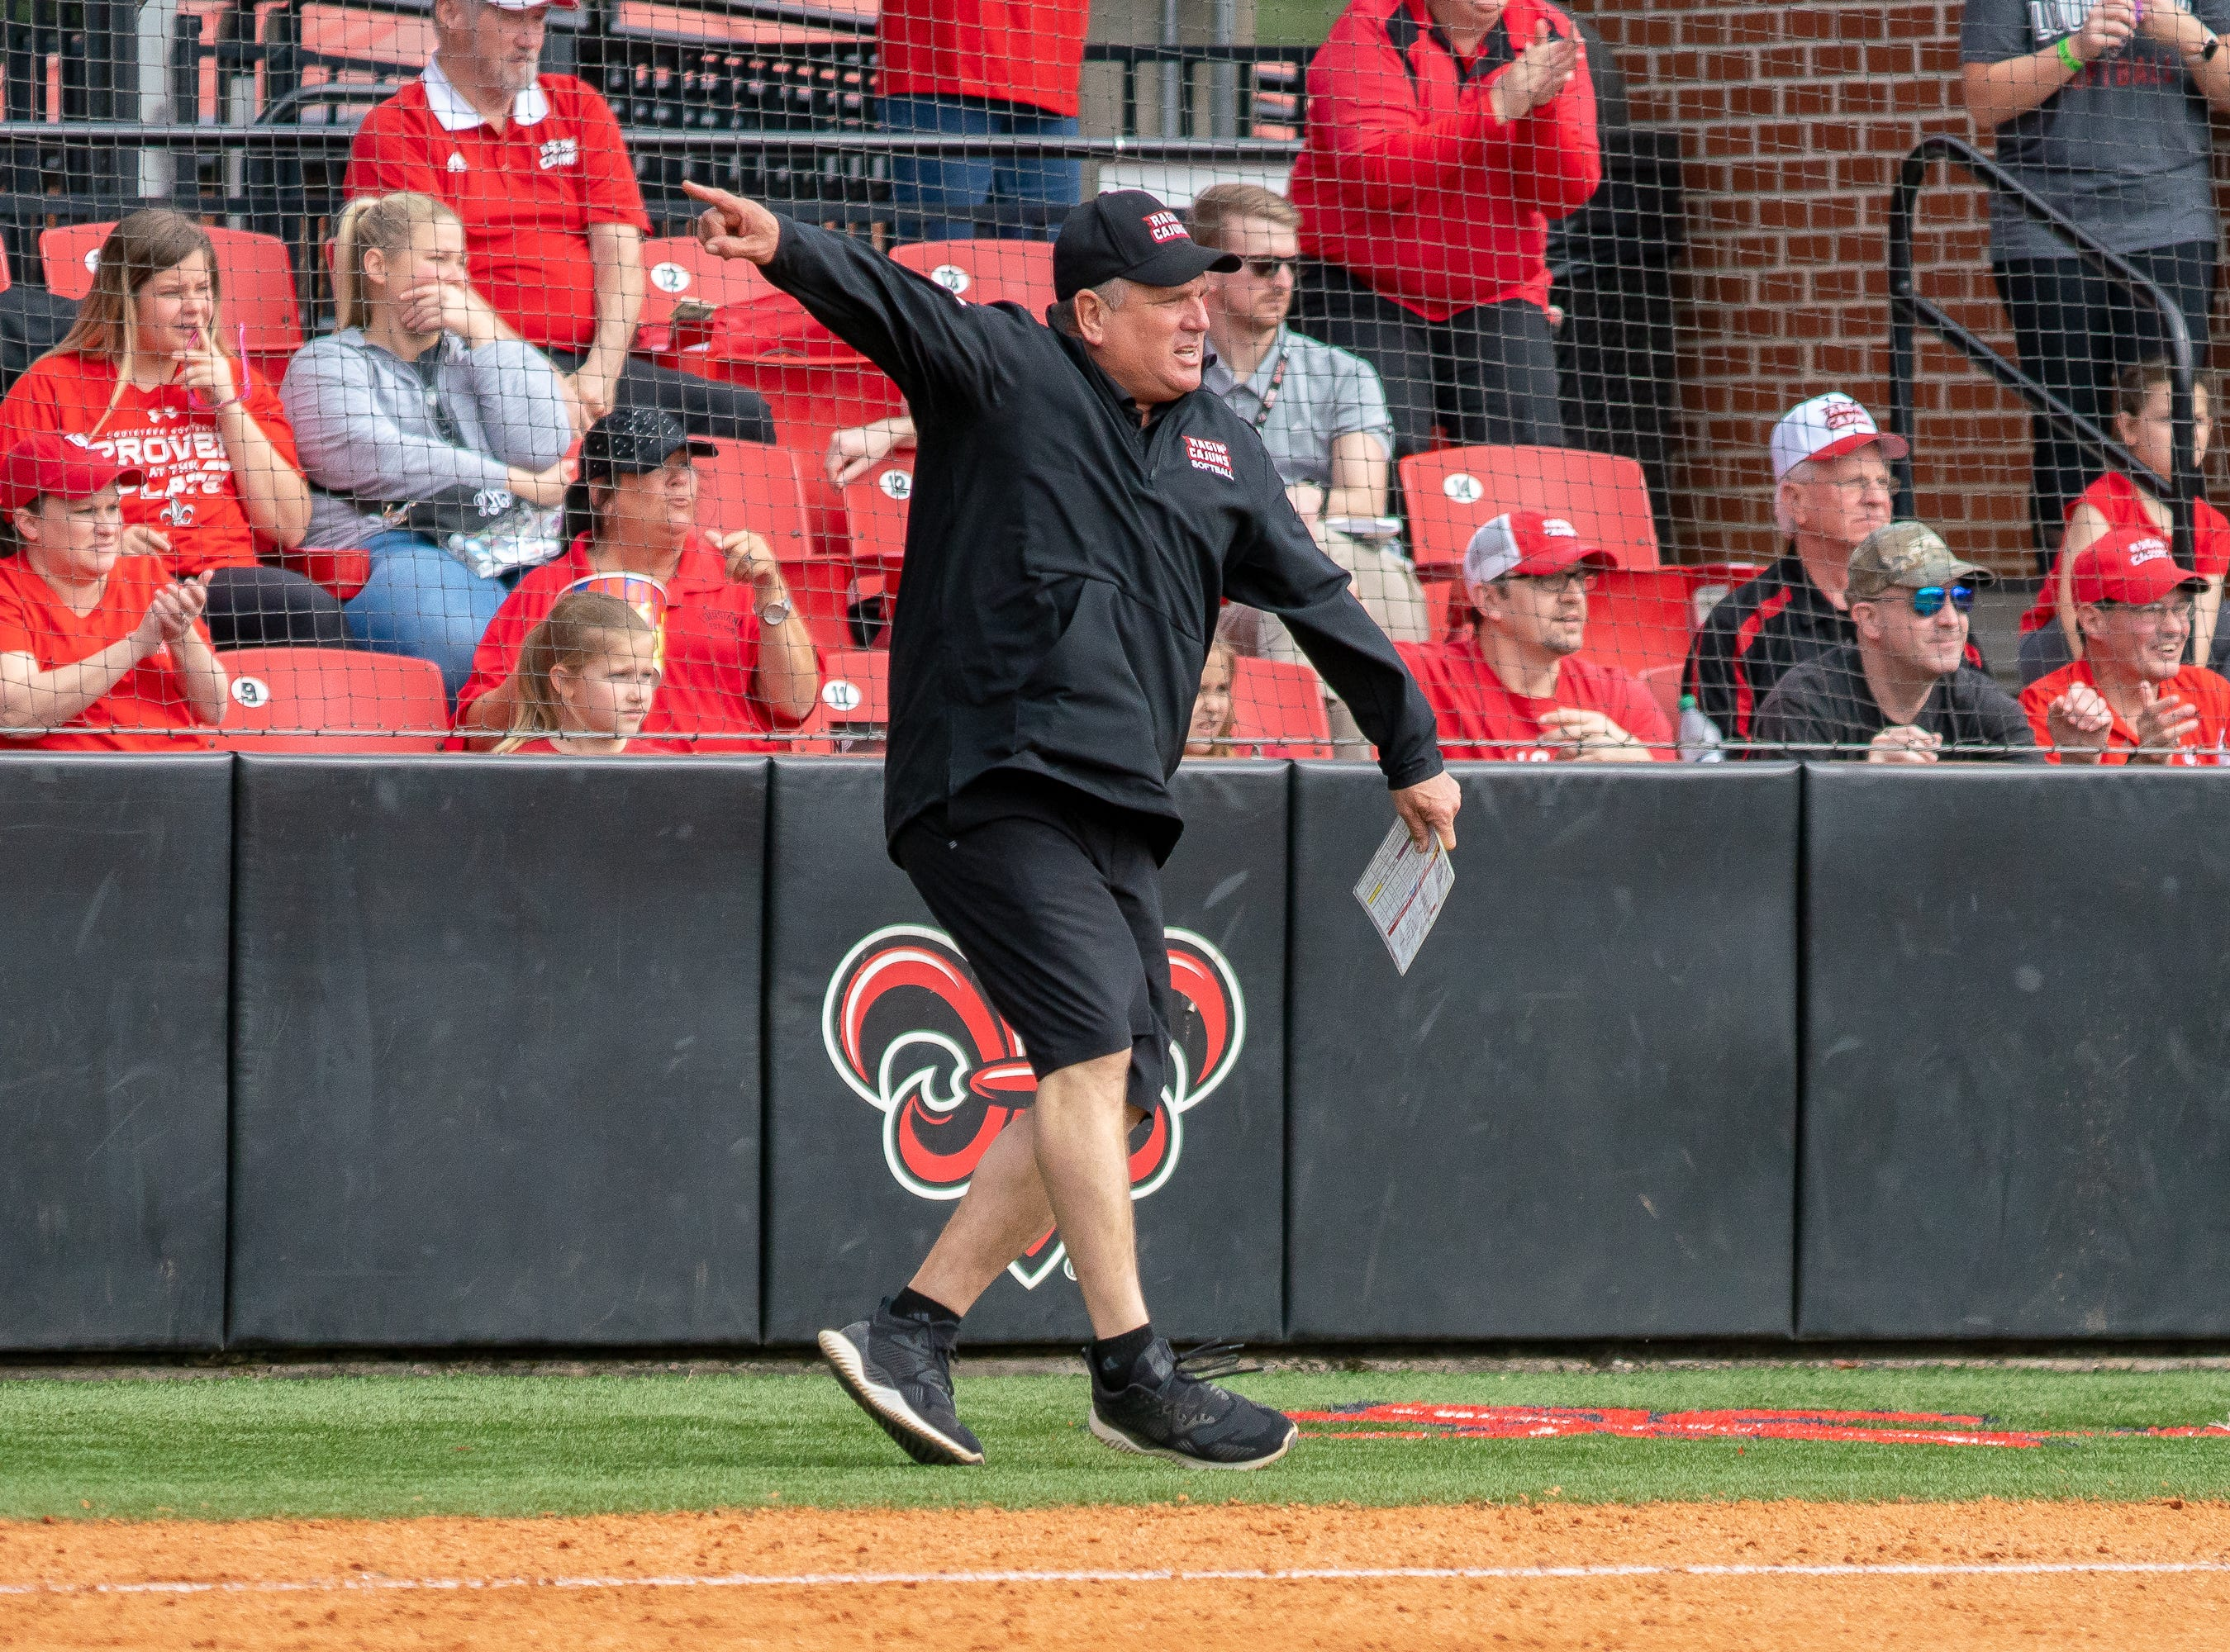 UL's head softball coach Gerry Glasco signals the runner to head for home plate as the Ragin' Cajuns take on Stephen F. Austin at Lamson Park on Saturday, Feb. 16, 2019.